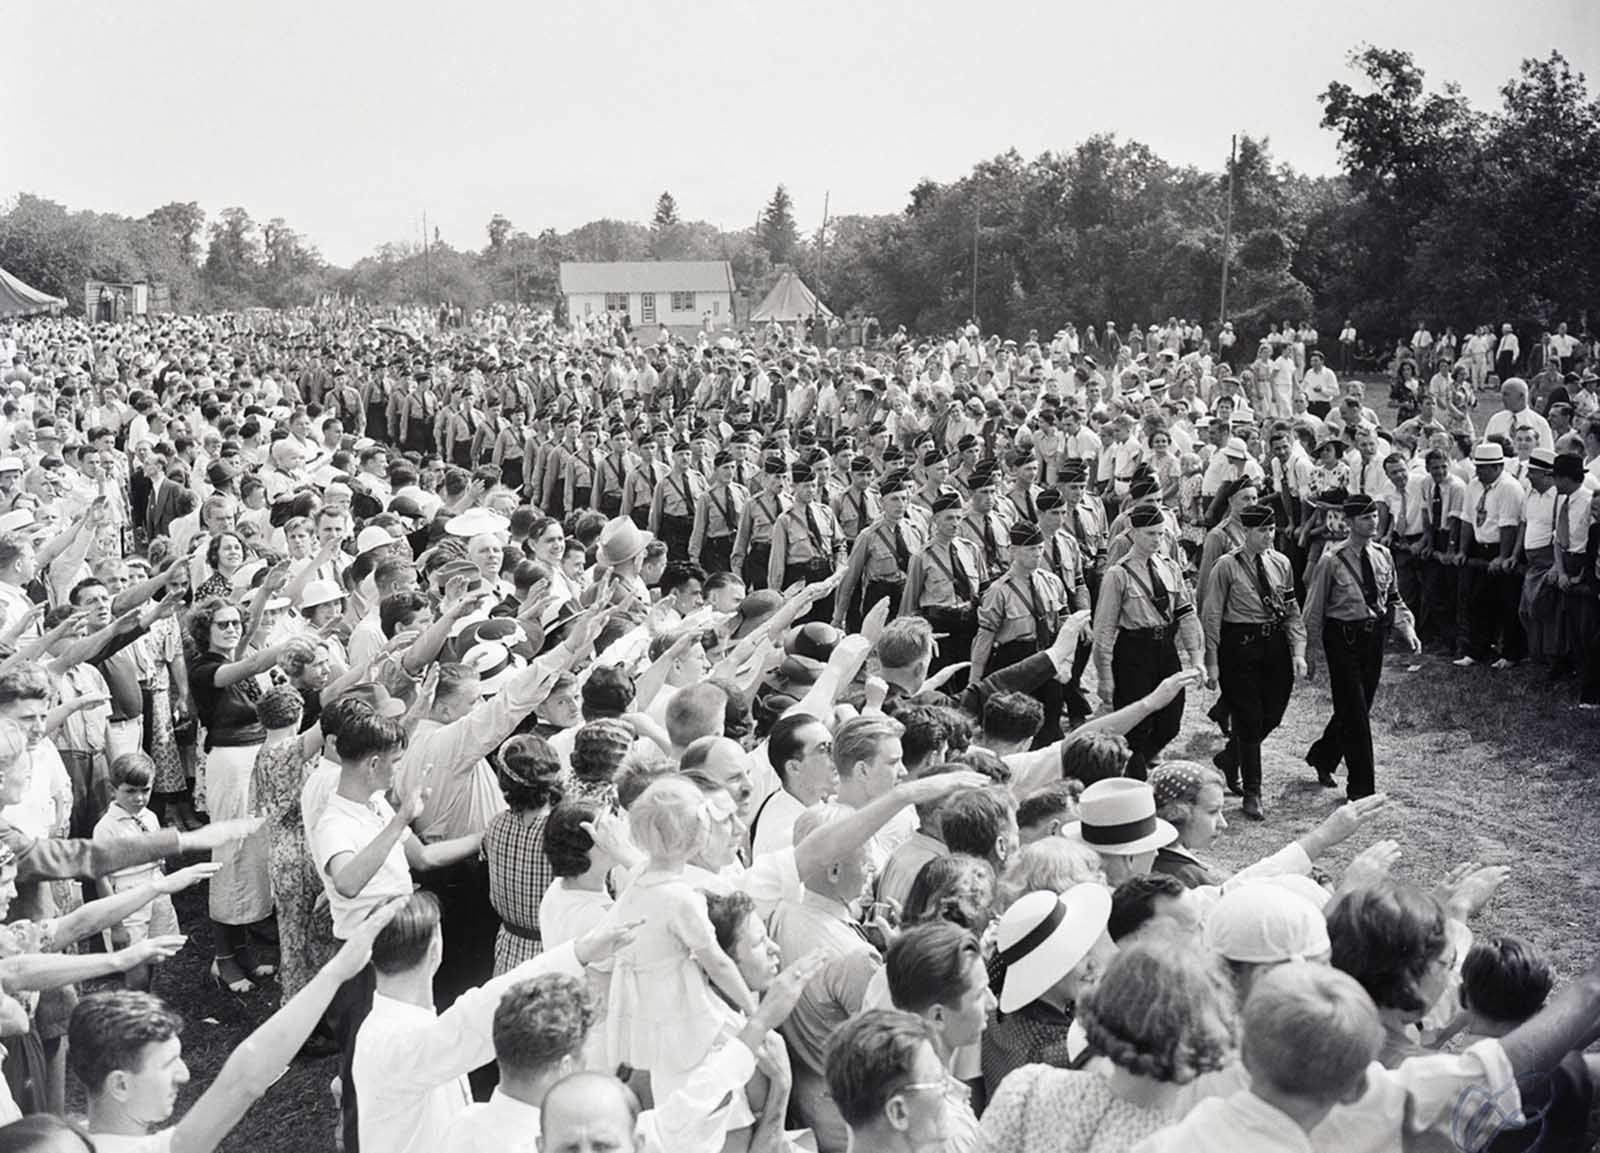 Hundreds of German Americans give the Nazi salute to young men marching in Nazi uniforms. The event was a German Day celebration sponsored by German American Bund at Camp Sigfried on Long Island.